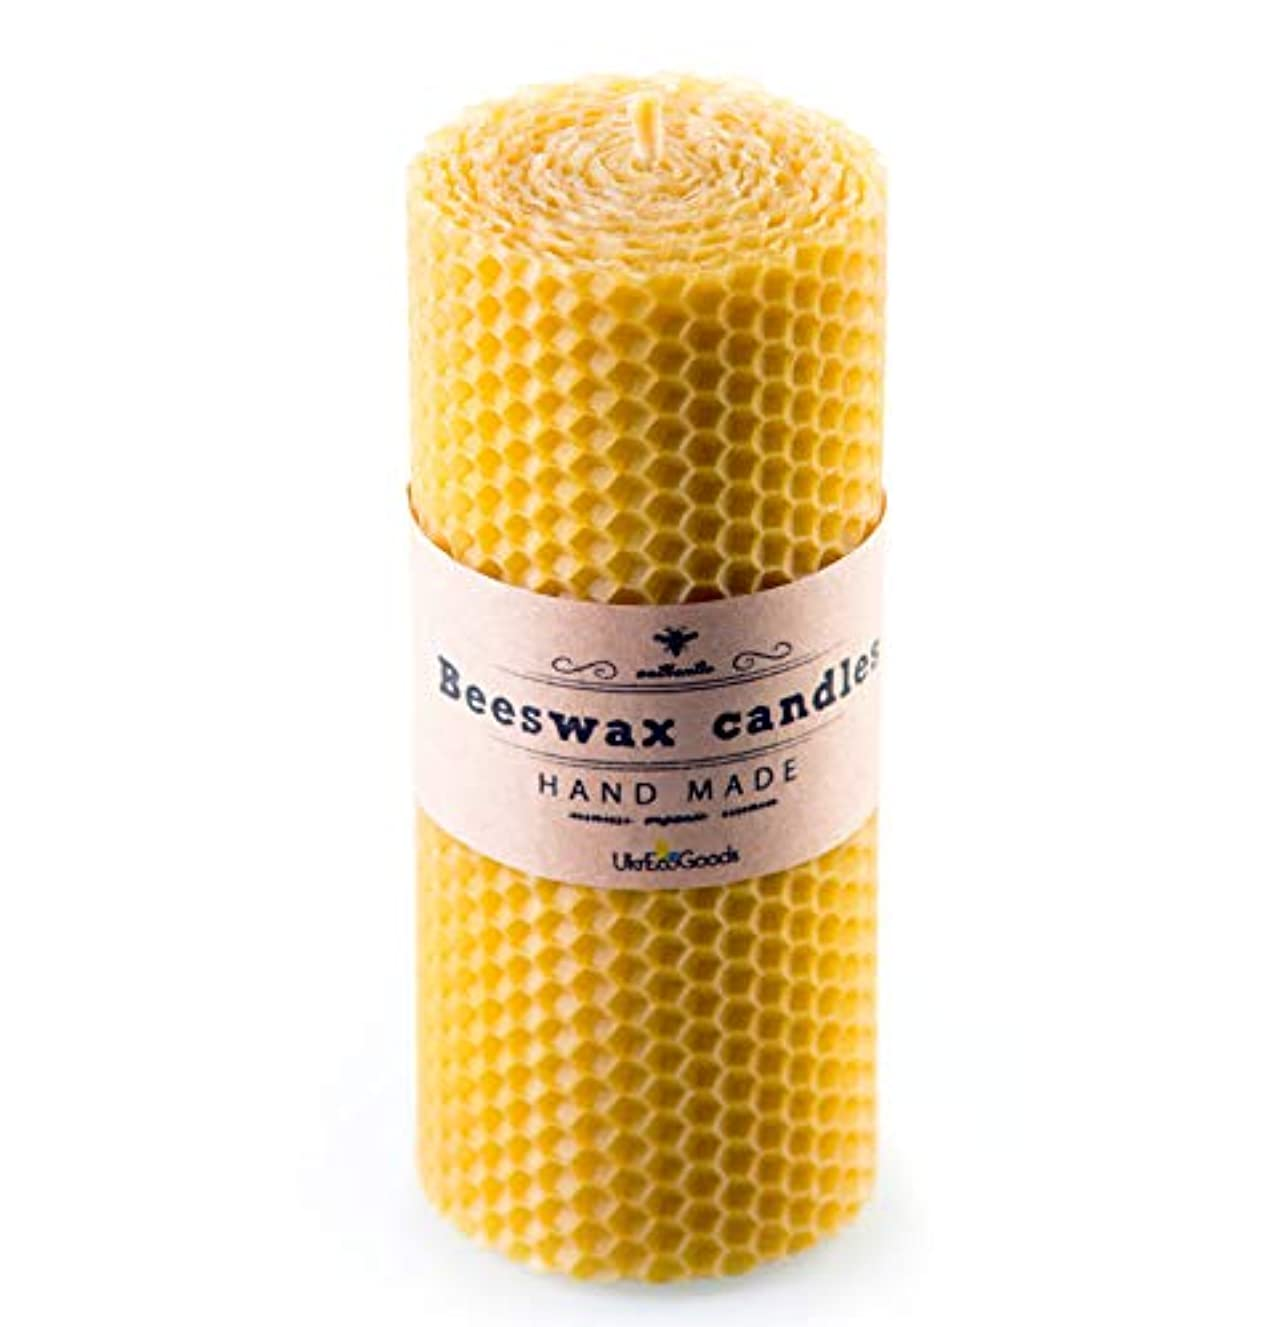 UkrEcoGoods Beeswax Candle, 15cm Hand Rolled Pillar candle with pure natural wax scent.